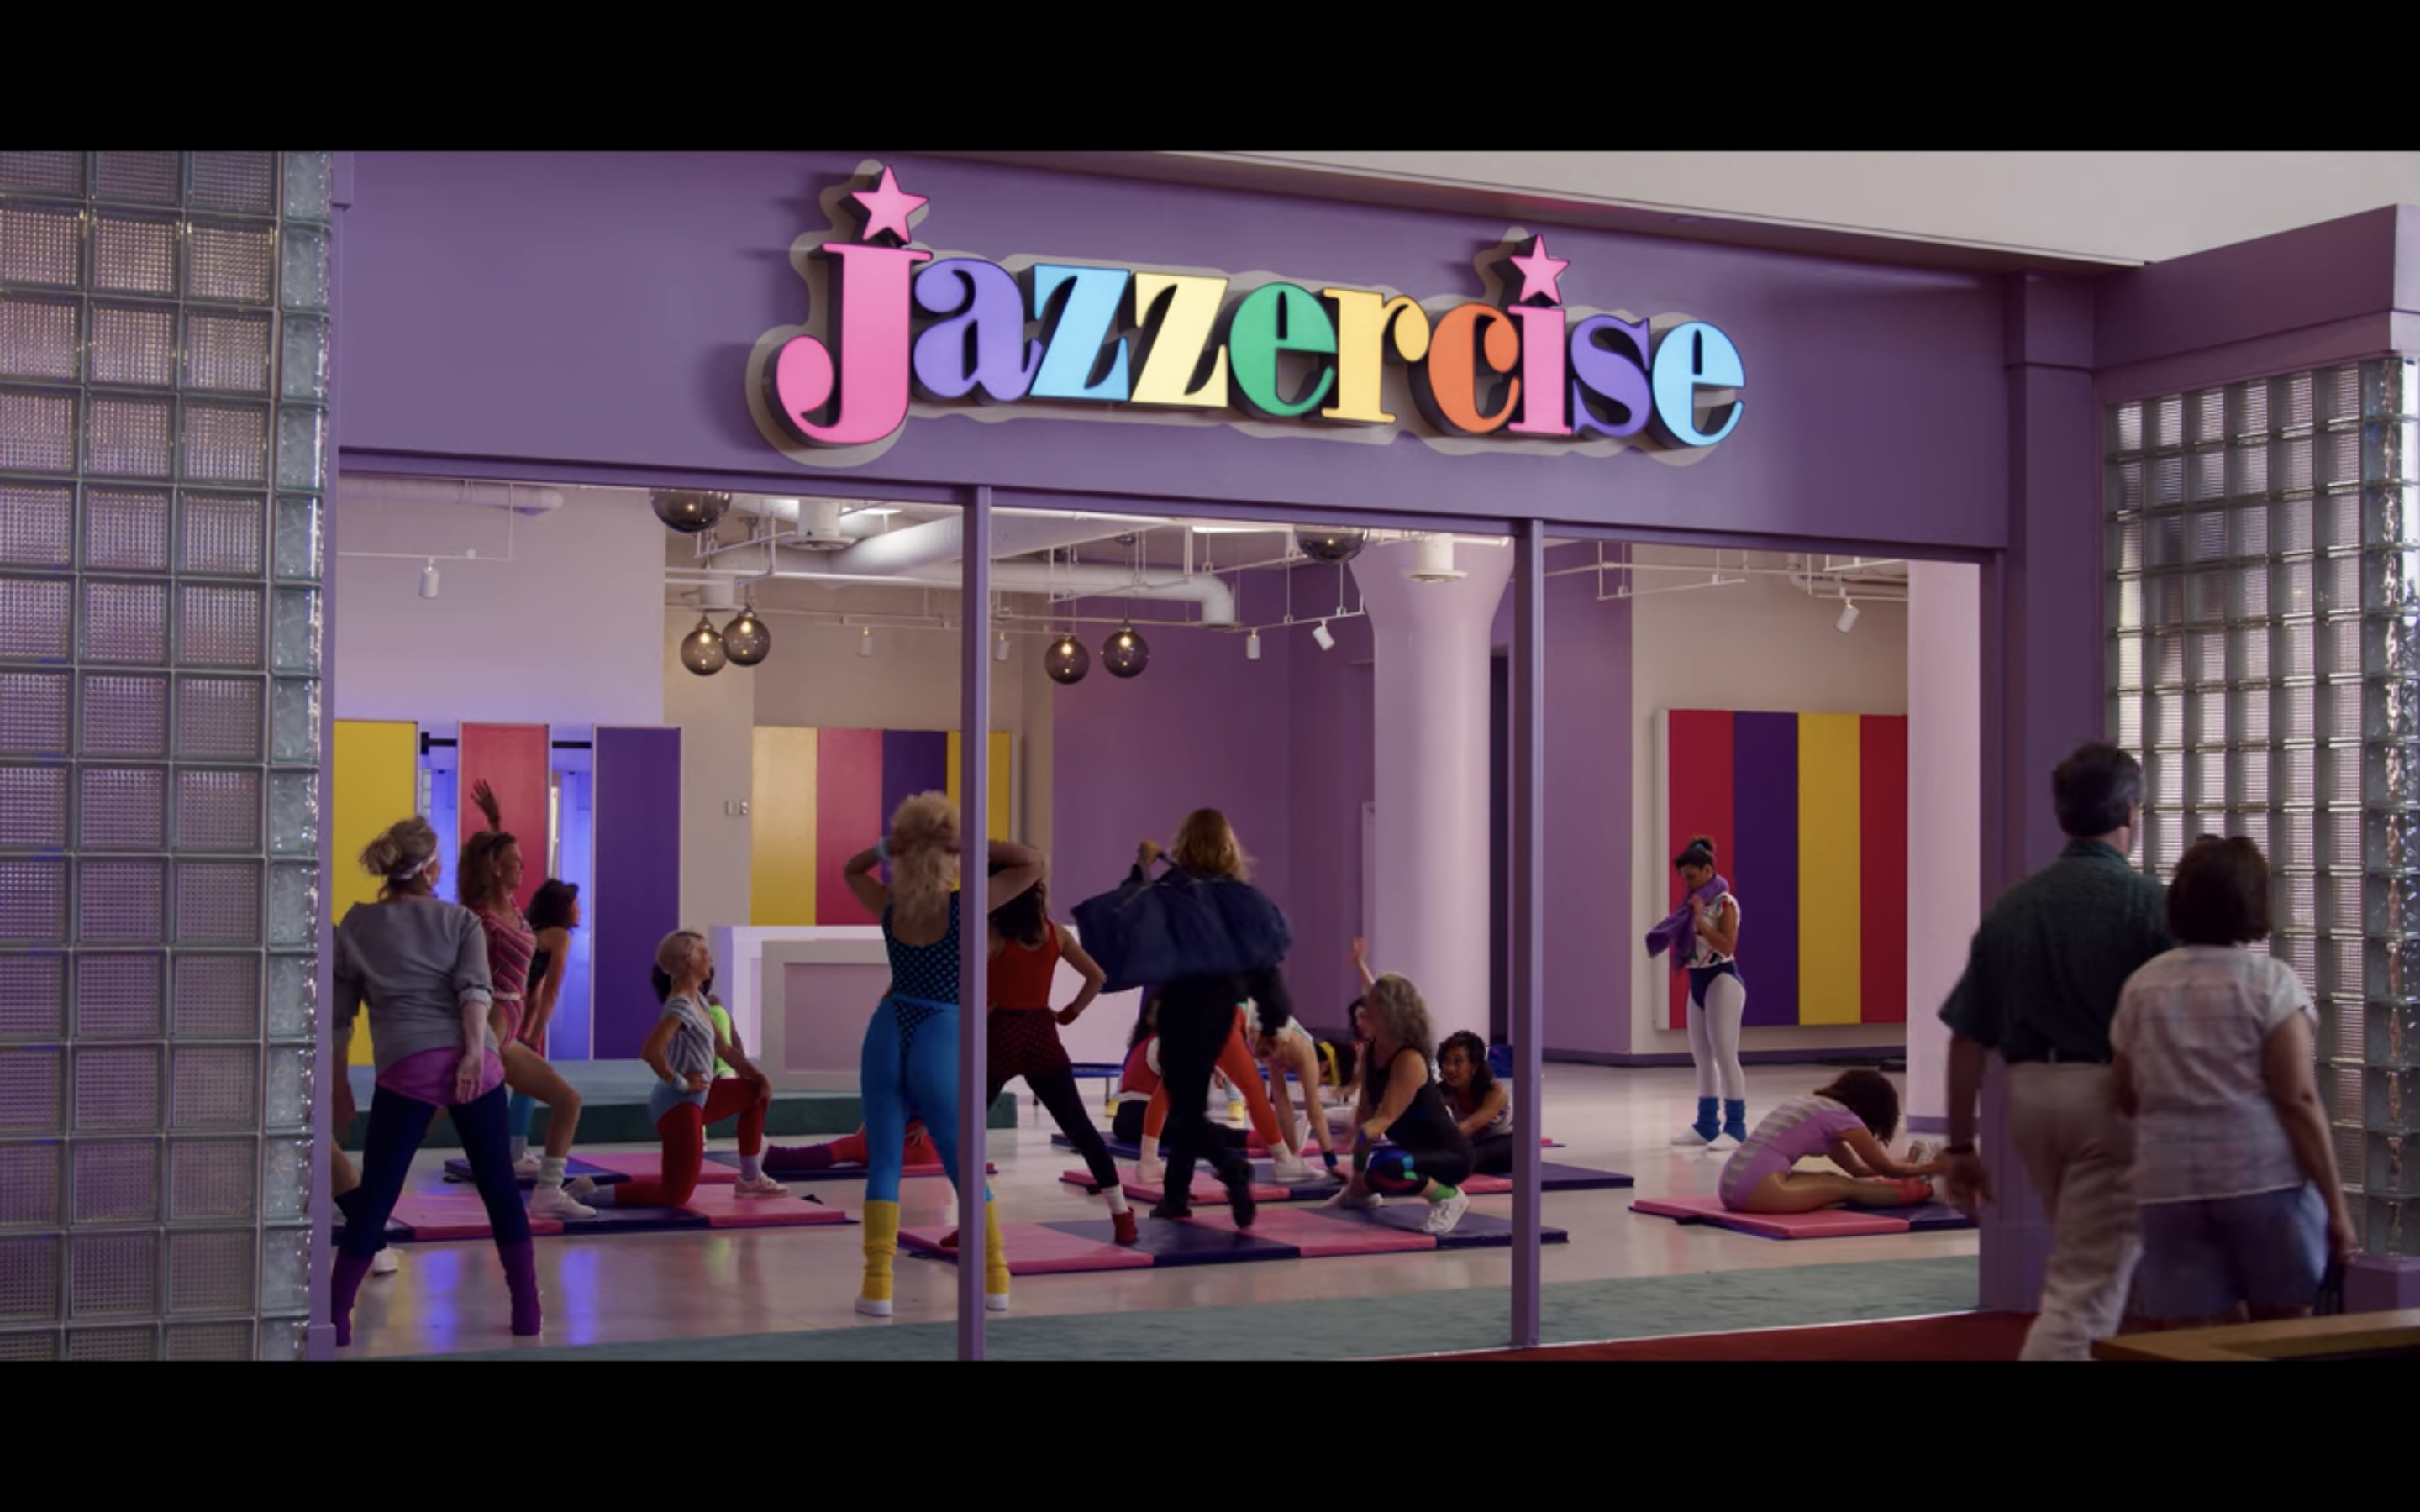 Jazzercise logo in Stranger Things mall